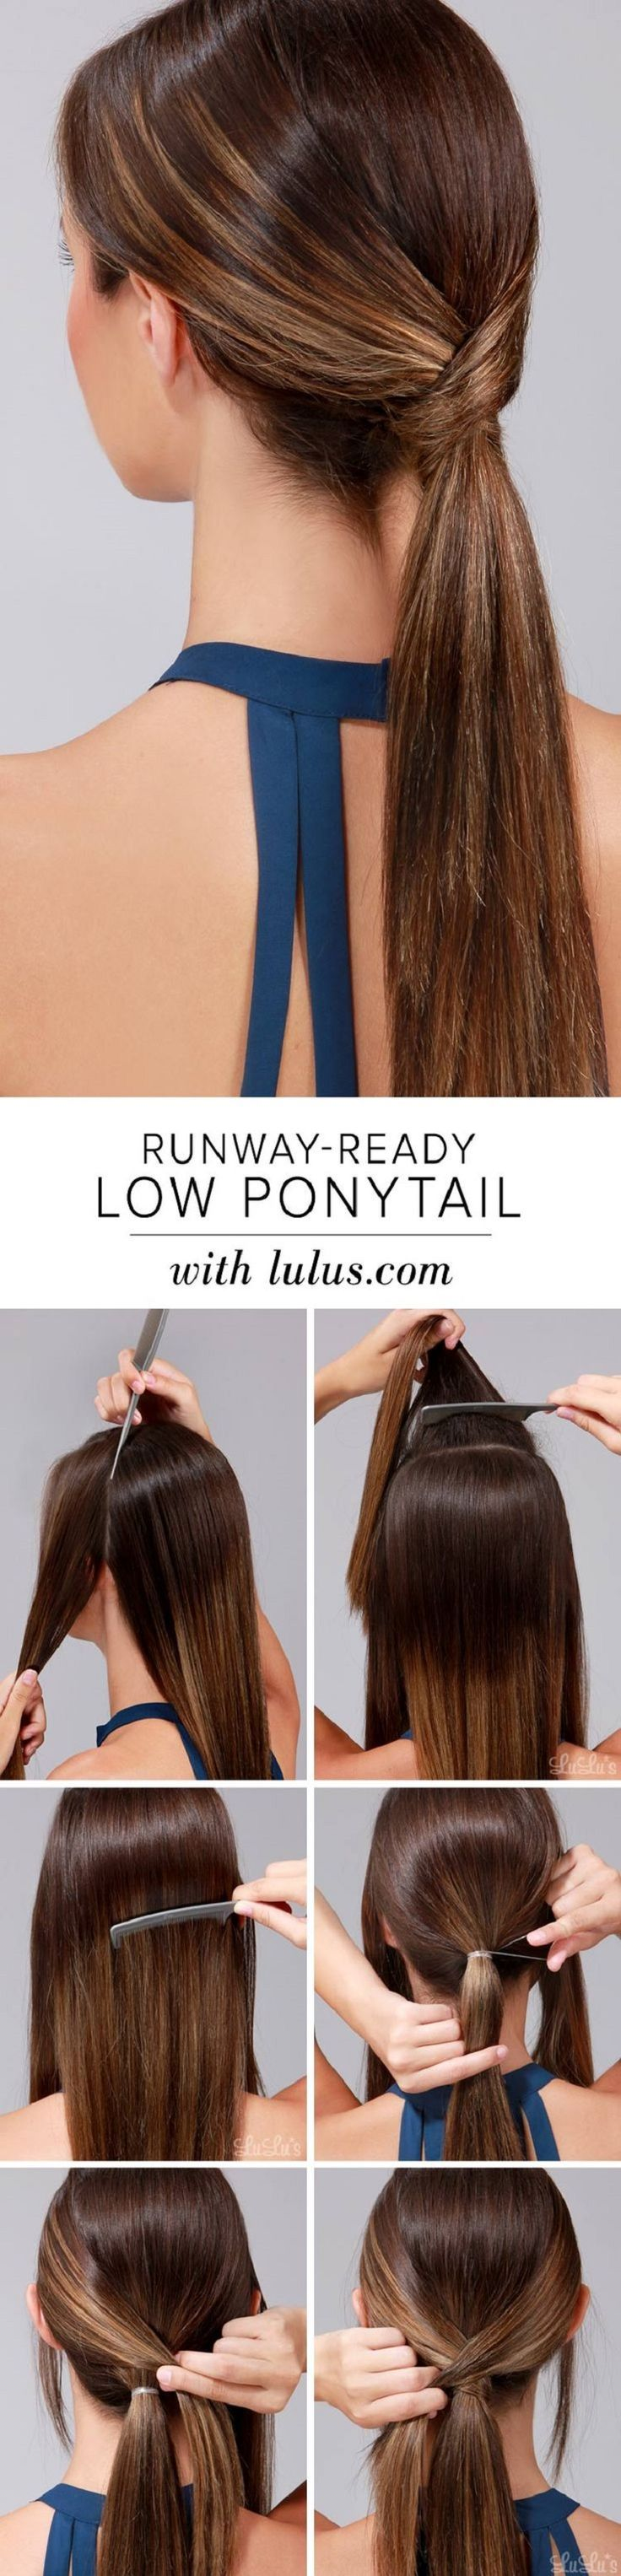 Runway-Ready Low Ponytail - 12 Hairstyle Tutorials for Lazy Girls | GleamItUp